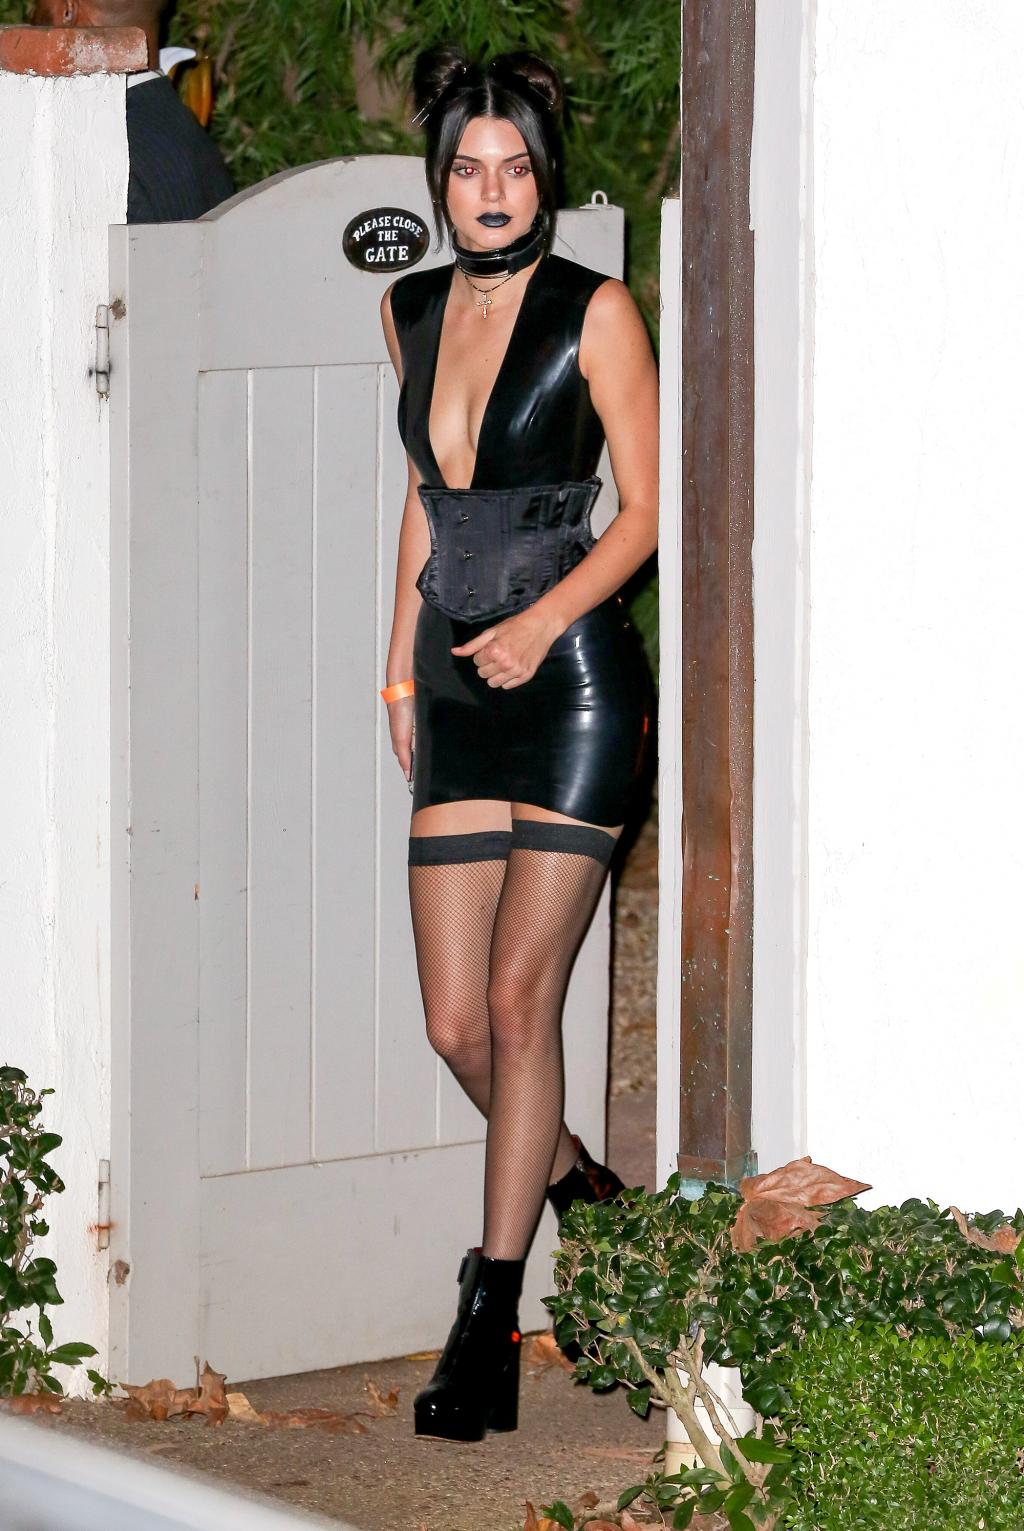 Vampire Chic! Kendall Jenner Goes Goth While Halloween Party-Hopping